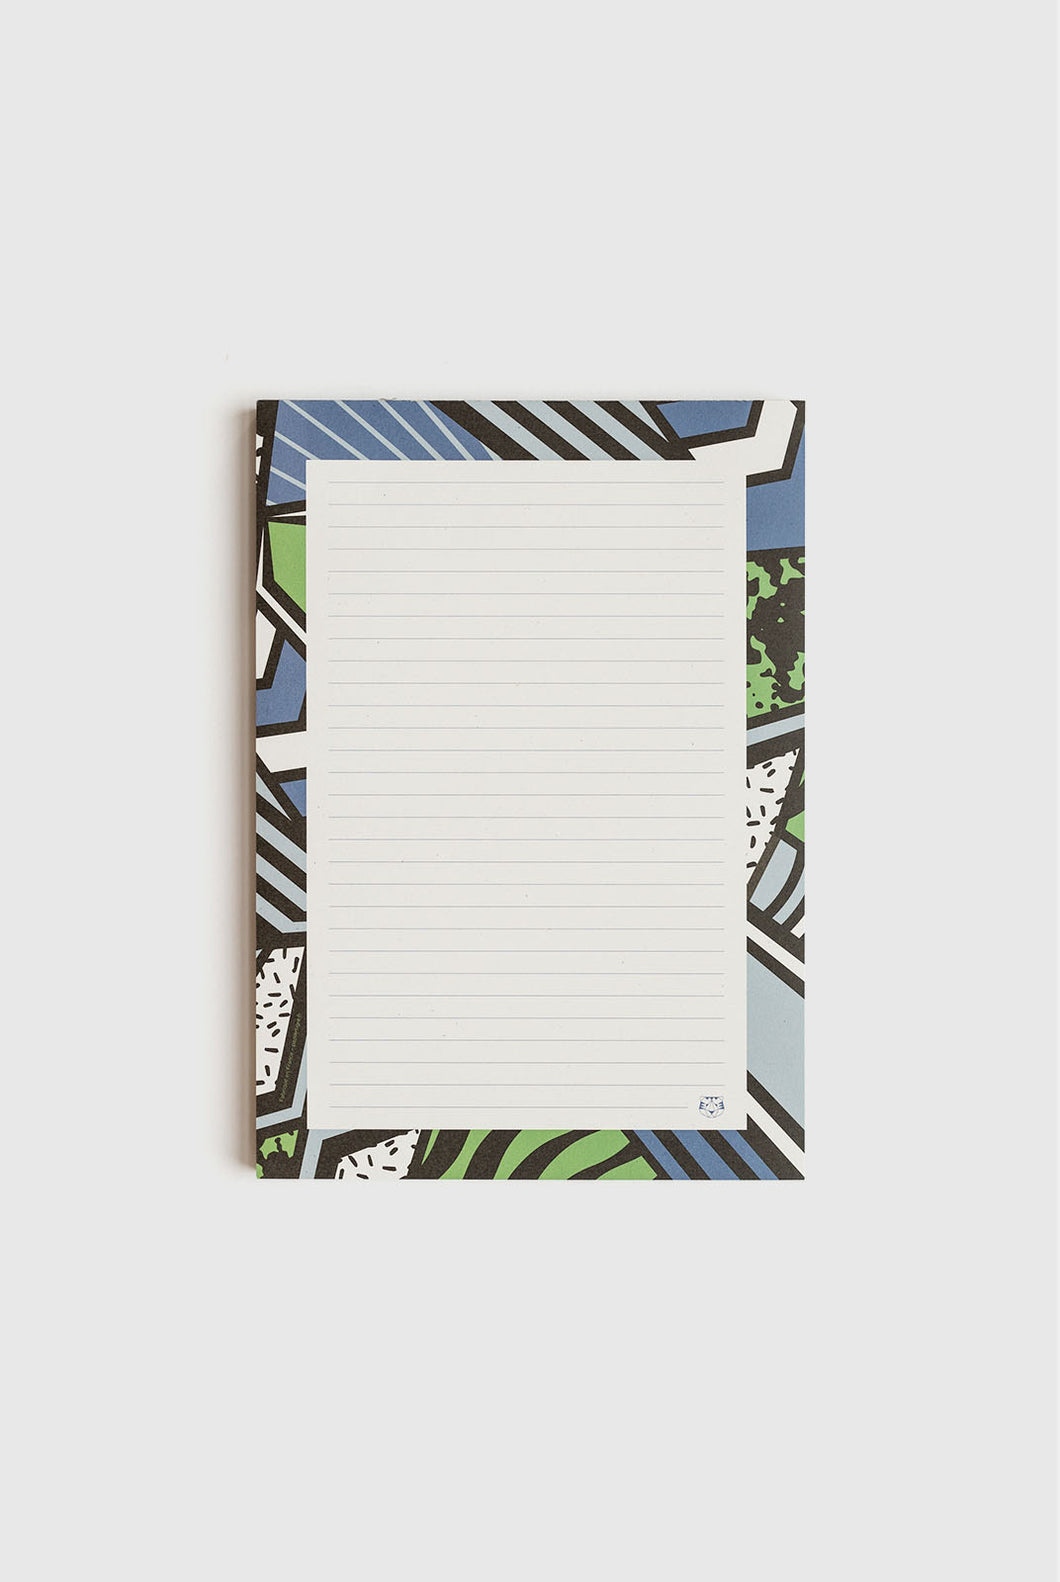 Papier Tigre - Notepad - A5 (15x21cm) - The Patchwork